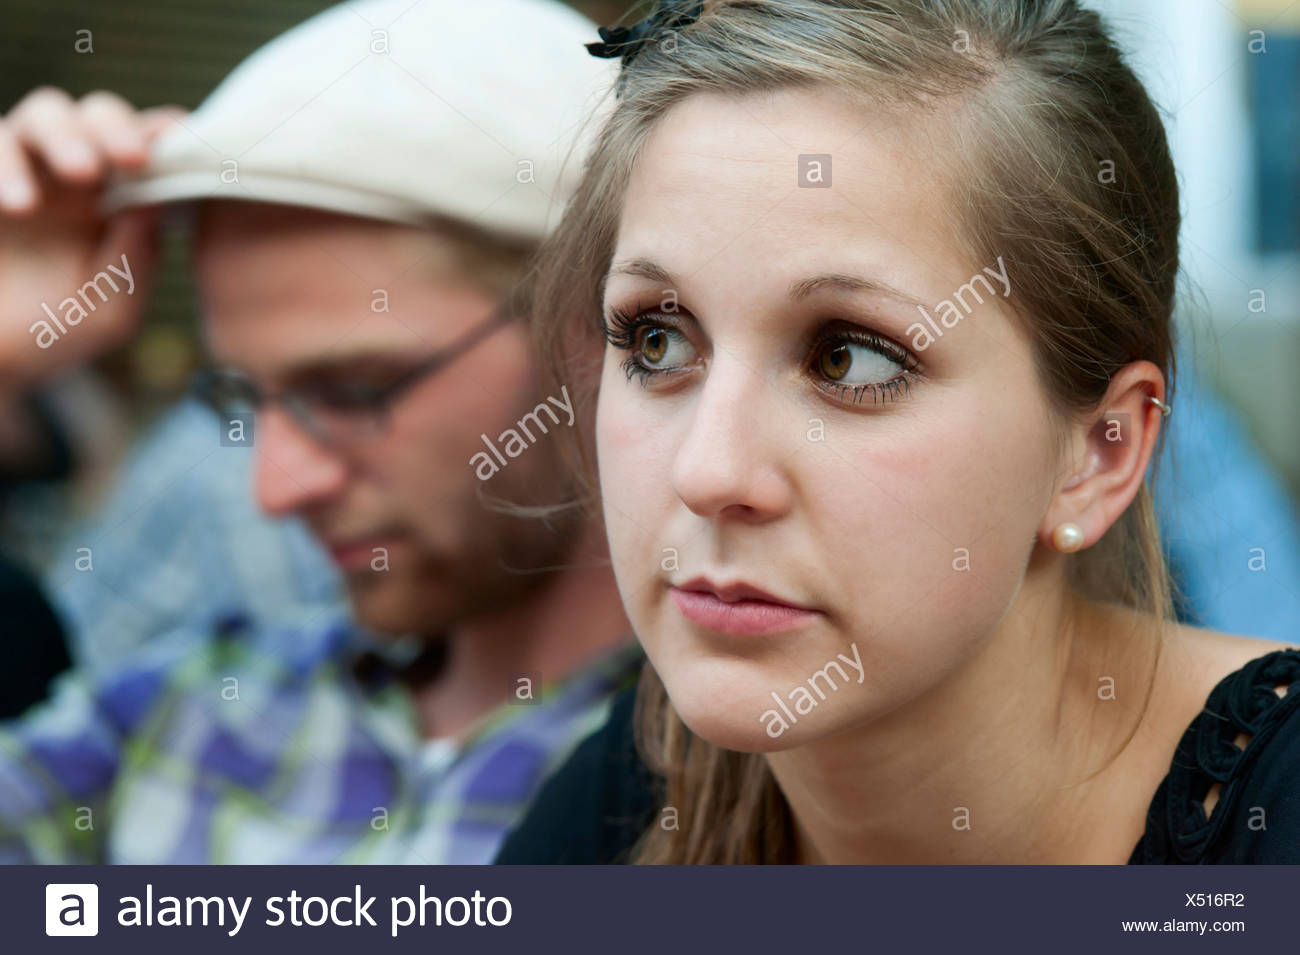 A young man and a young woman looking a bit bored, Germany, Europe - Stock Image